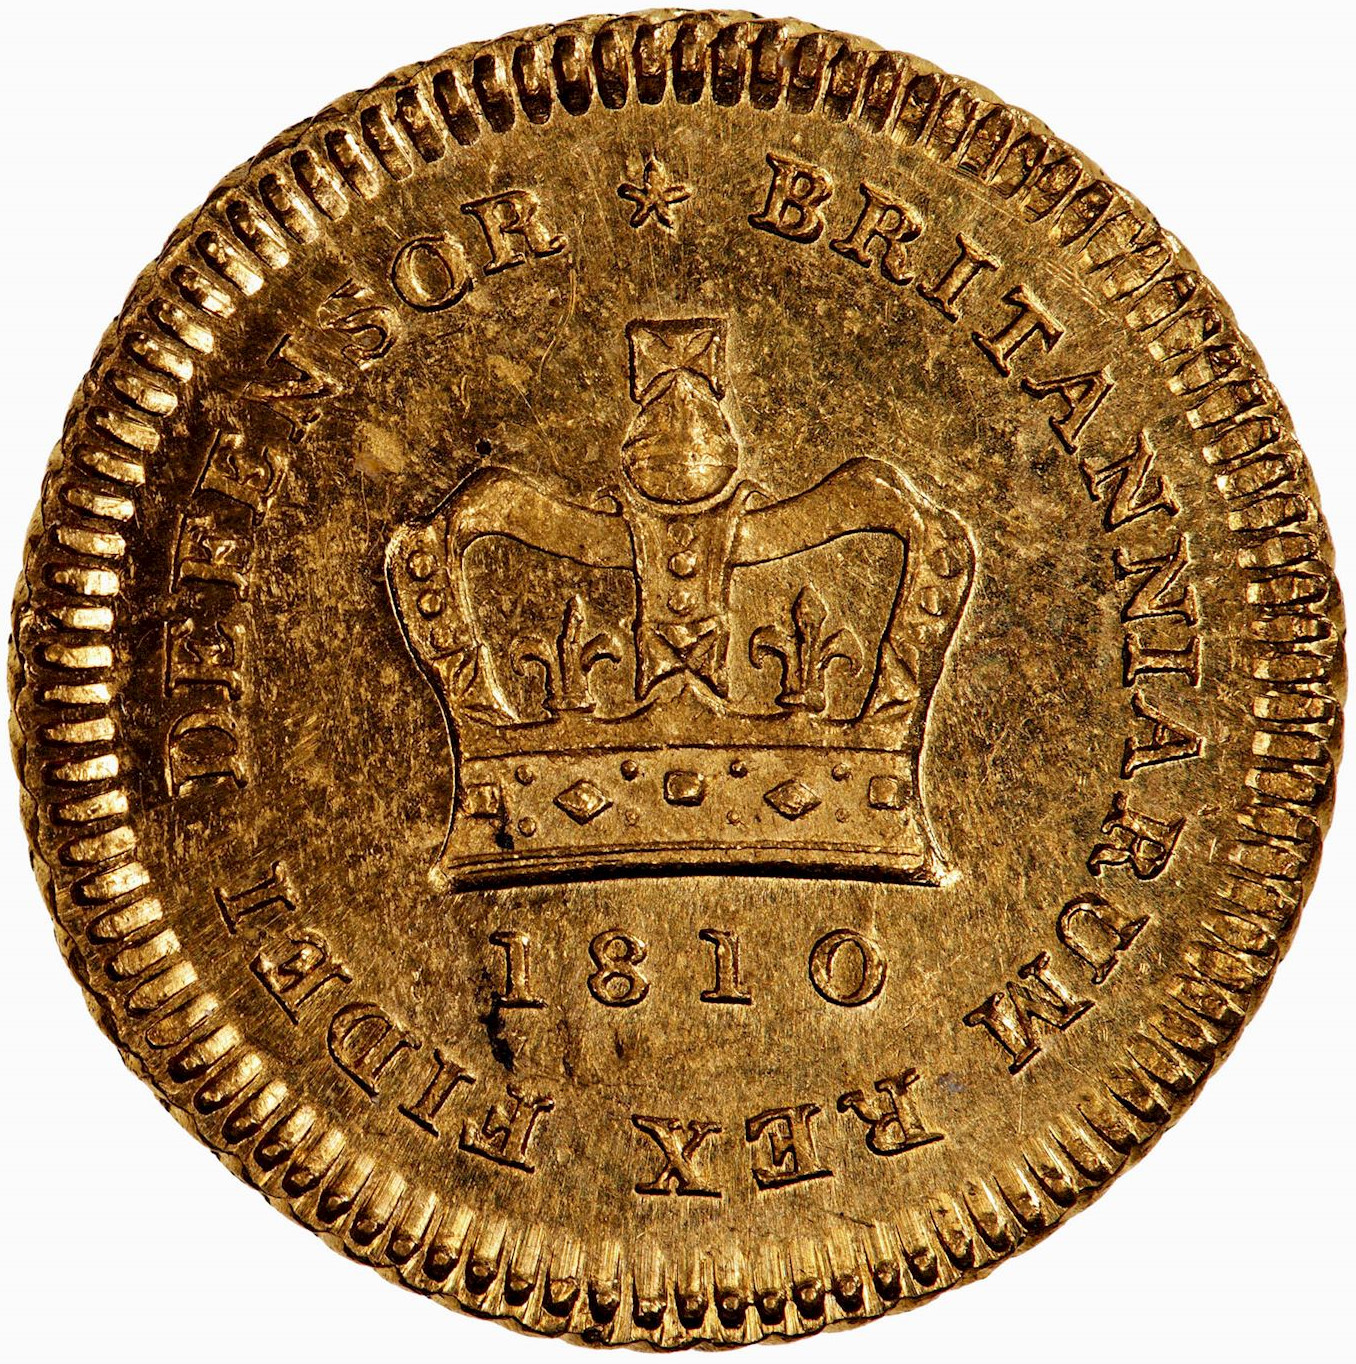 Third Guinea 1810: Photo Coin - Third-Guinea, George III, Great Britain, 1810